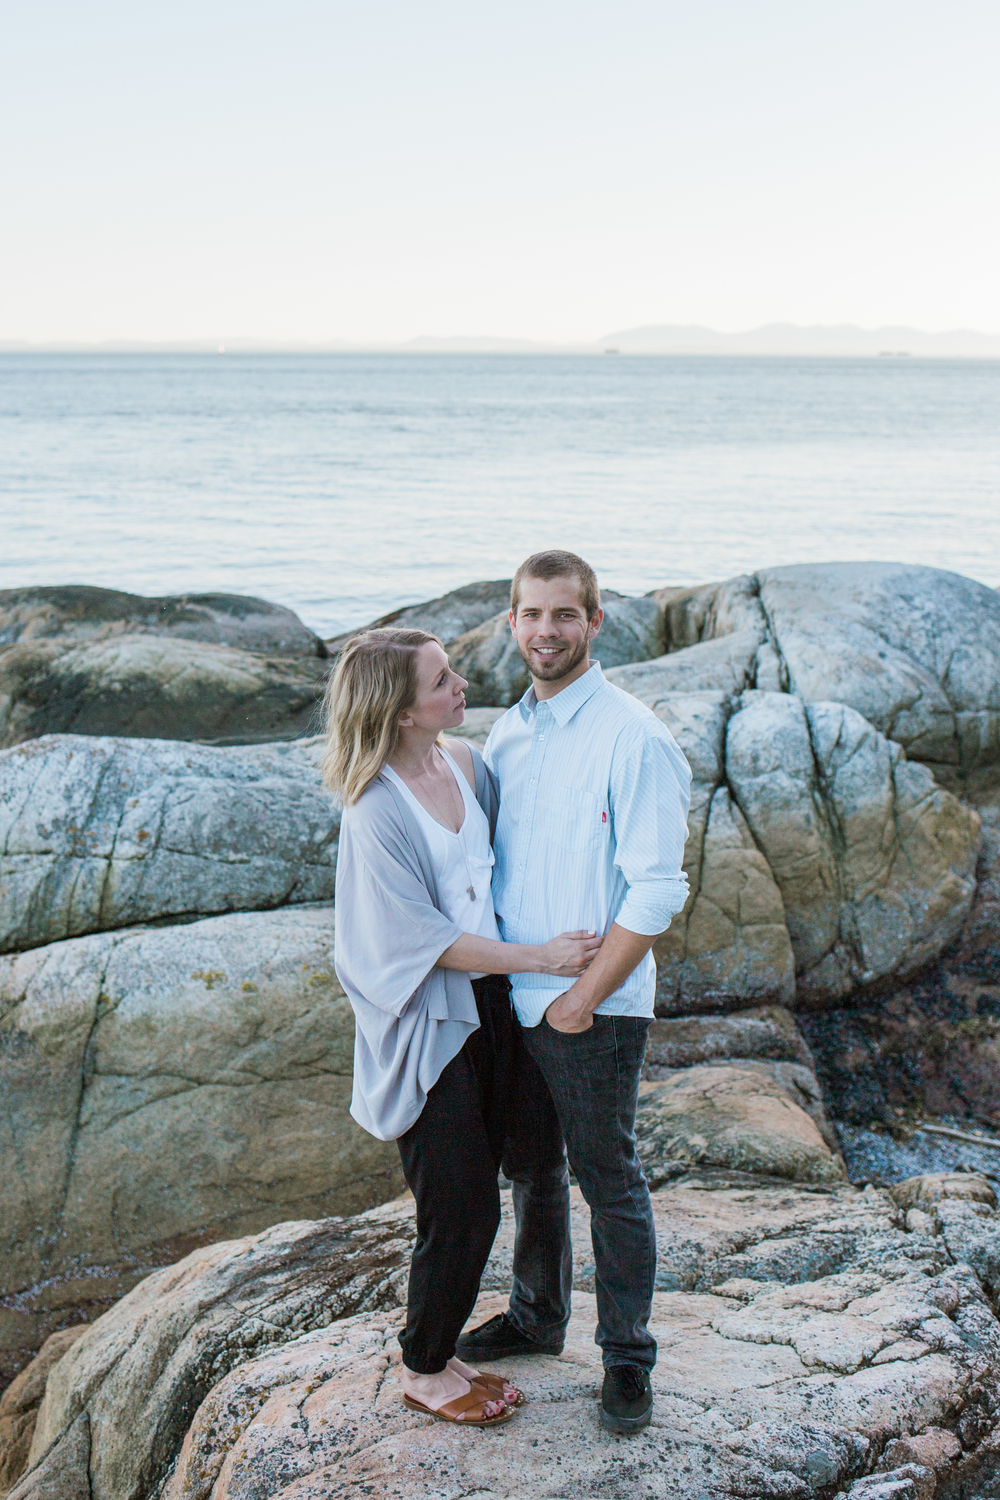 LightHousePark-Engagement-M&J-MintPhotography-35.jpg